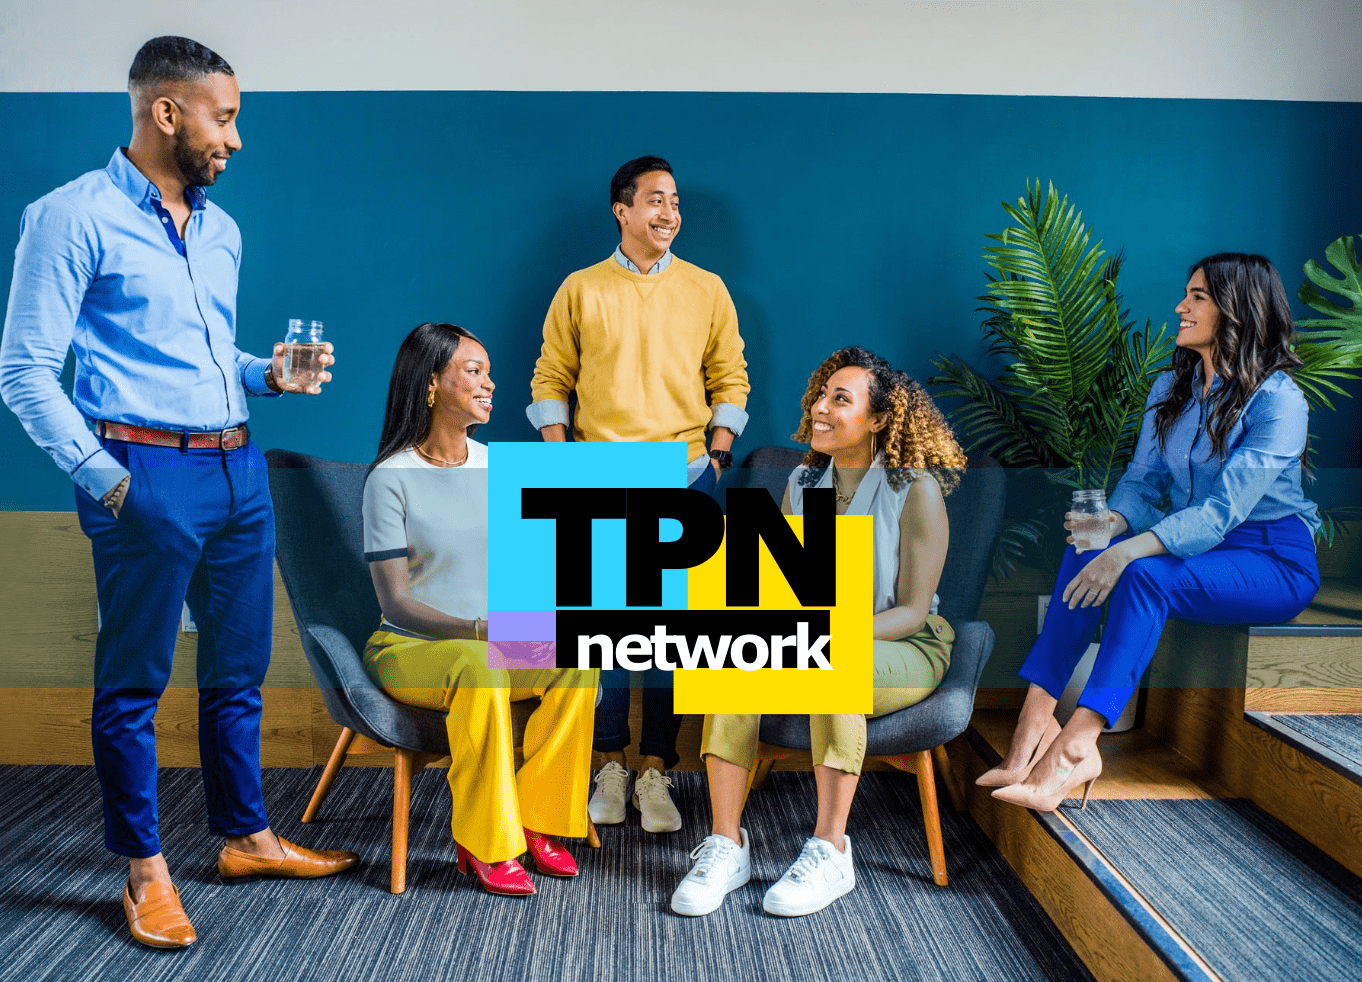 toronto procurement network TPN